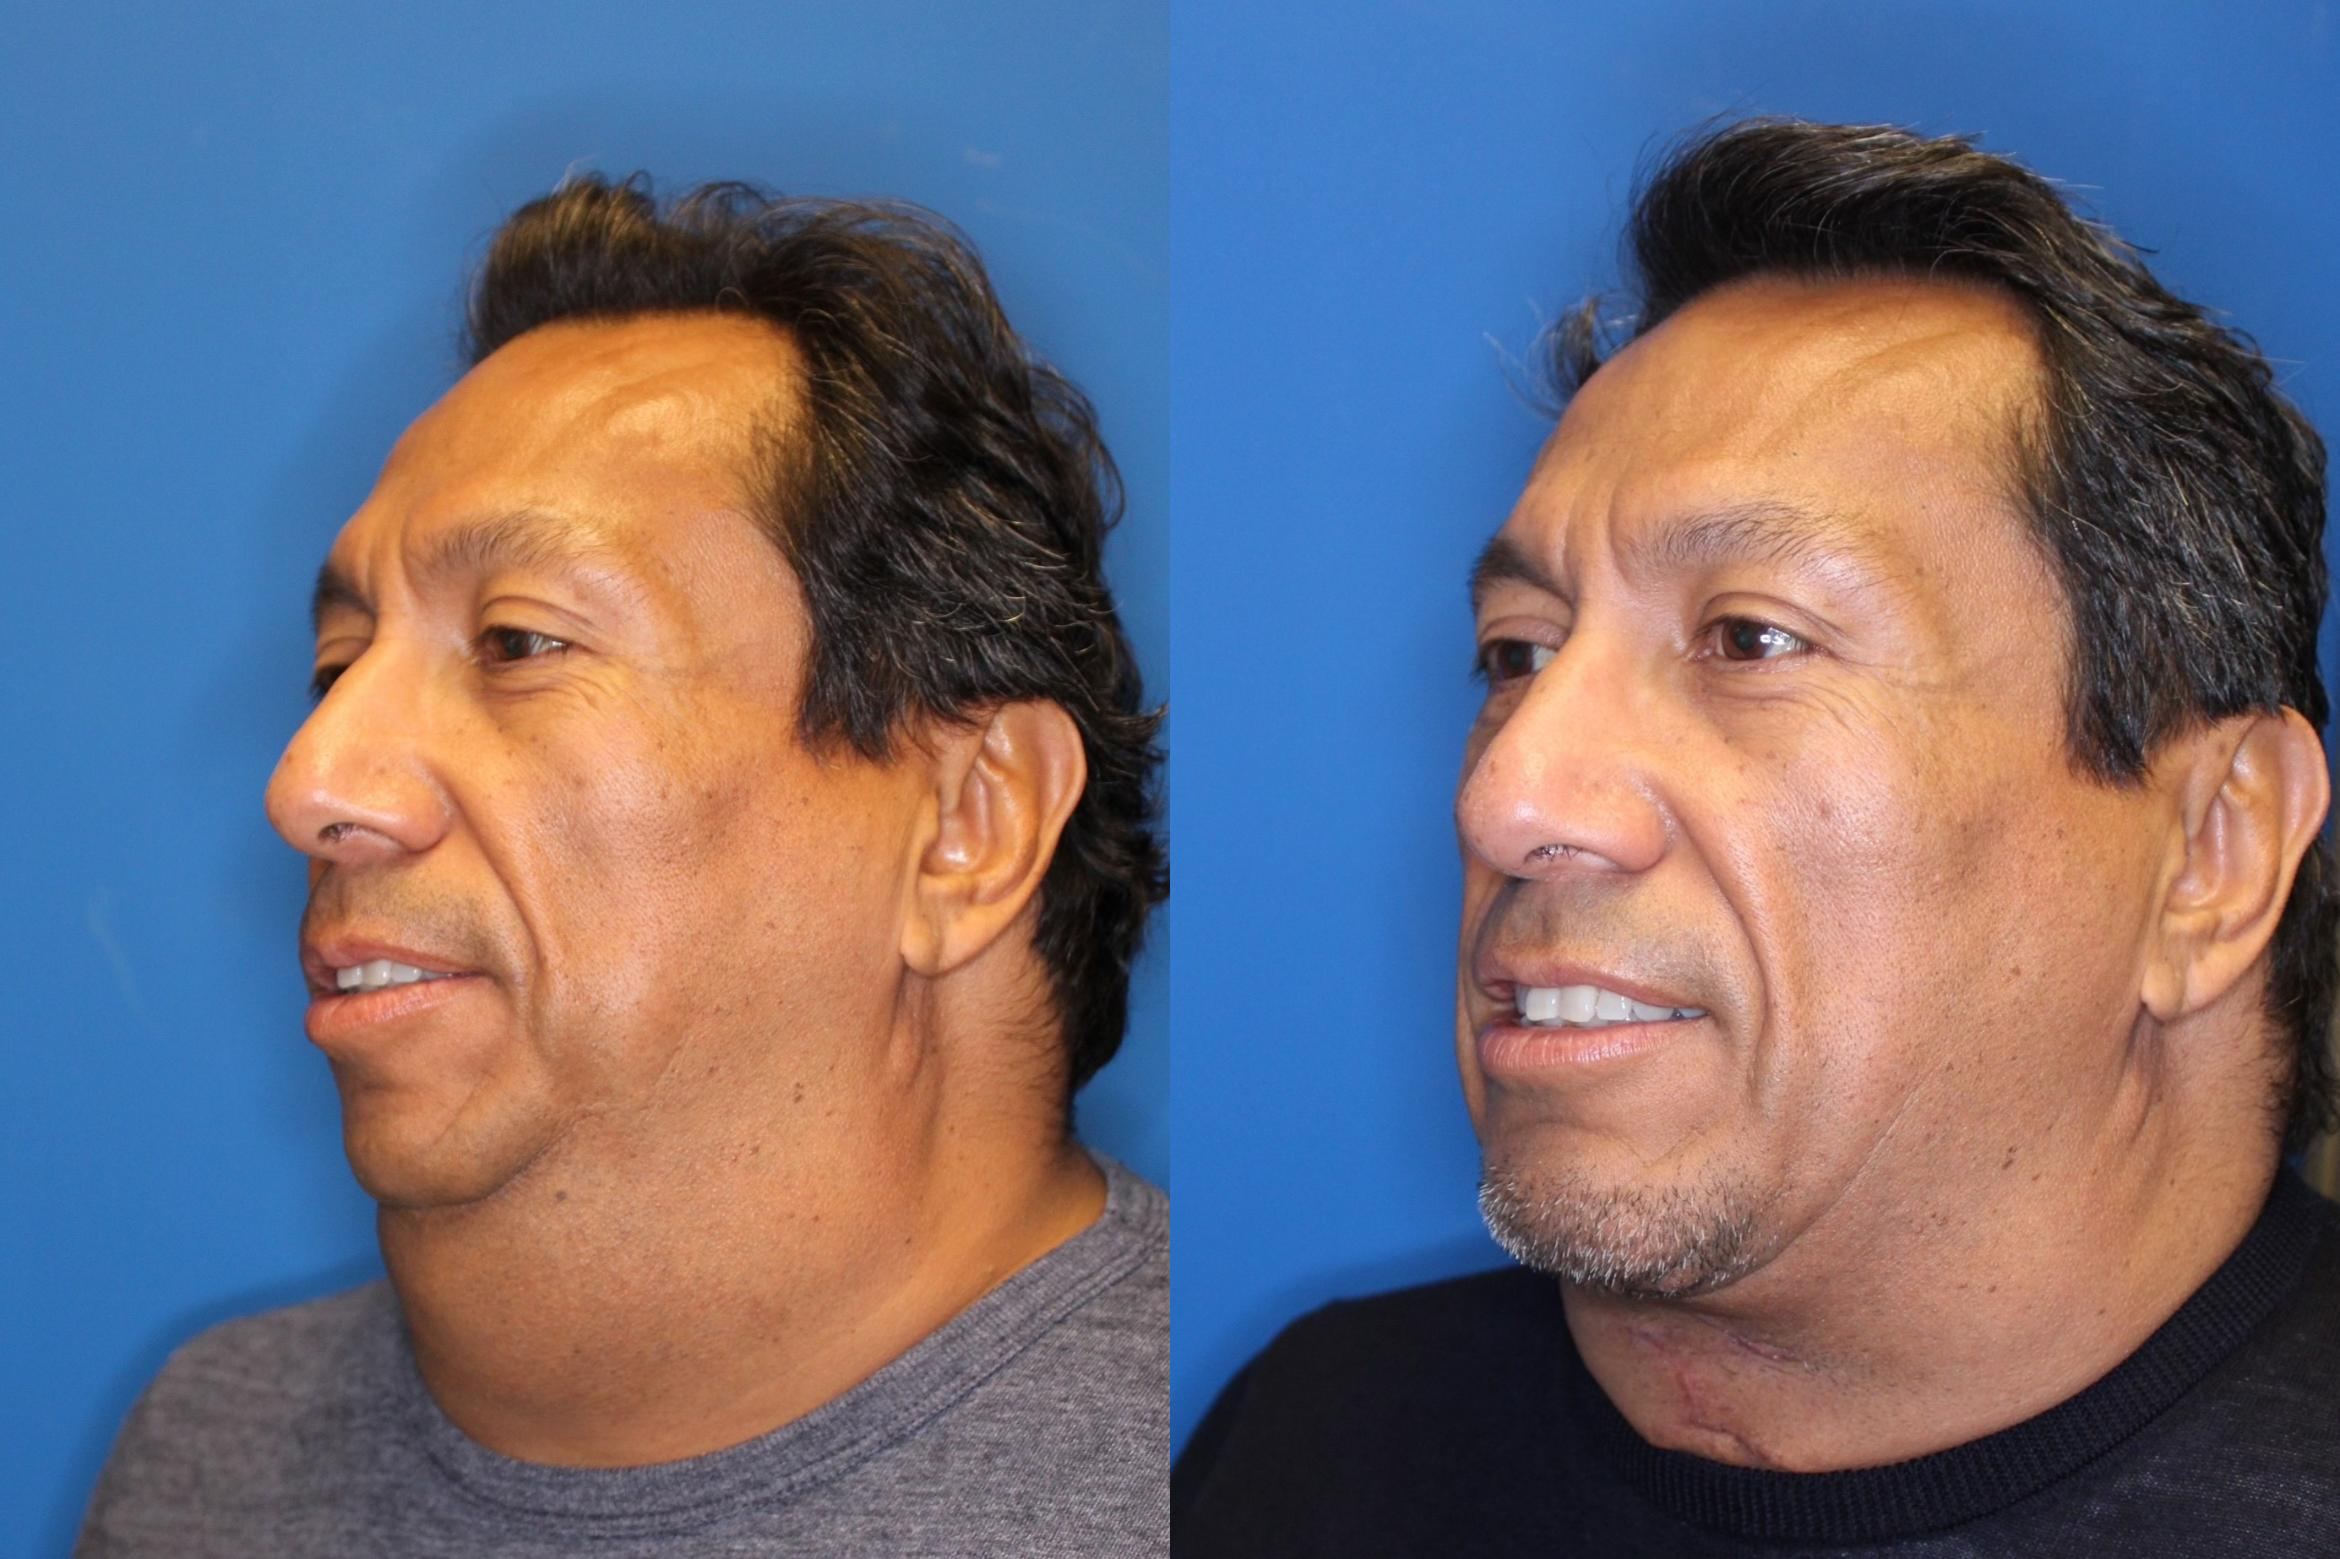 Neck Lift Before & After Photo | San Francisco, CA | Kaiser Permanente Cosmetic Services